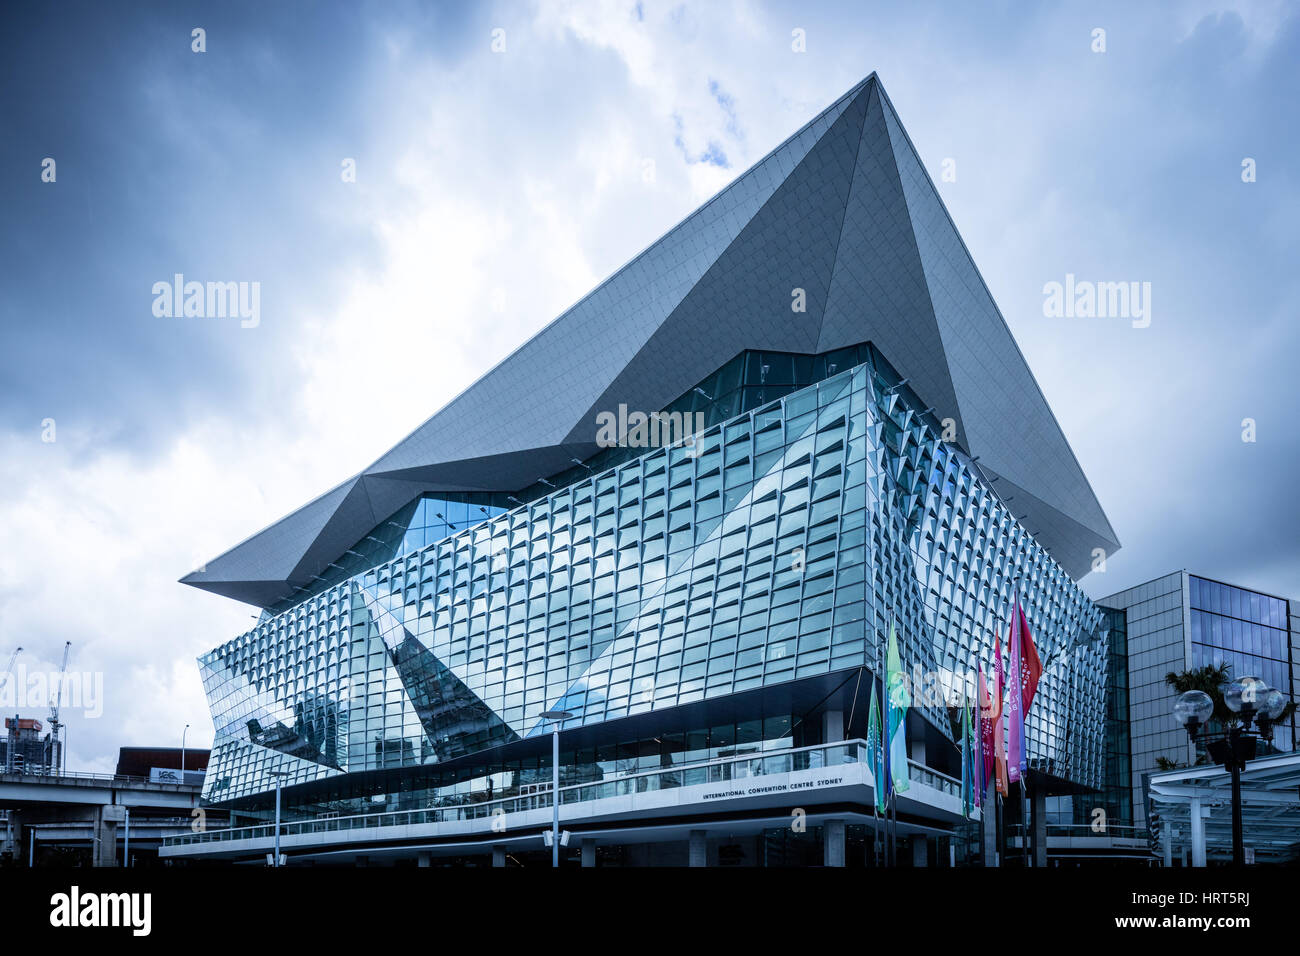 The New International Convention Centre in Darling Harbour, Sydney - Stock Image